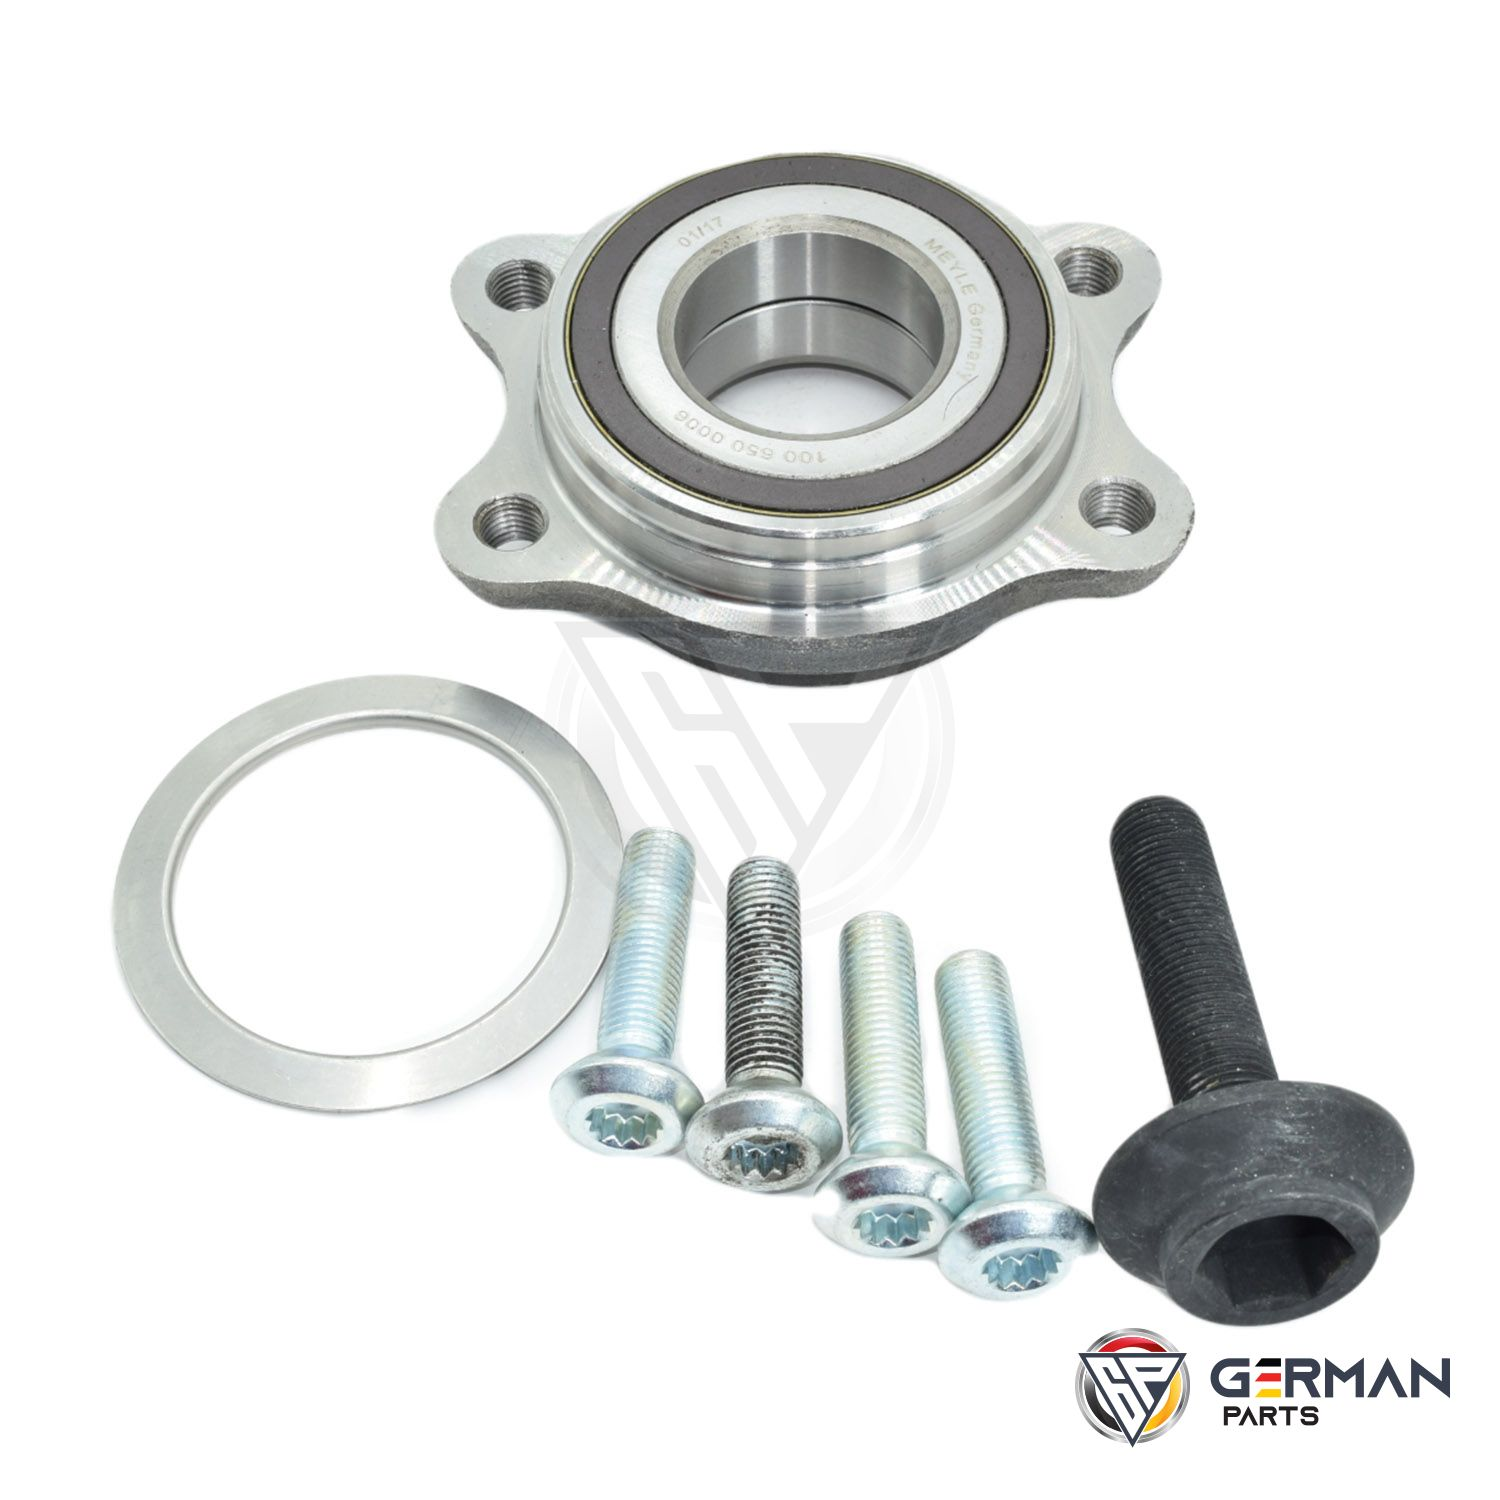 Buy Meyle Wheel Bearing Kit 4E0498625B - German Parts